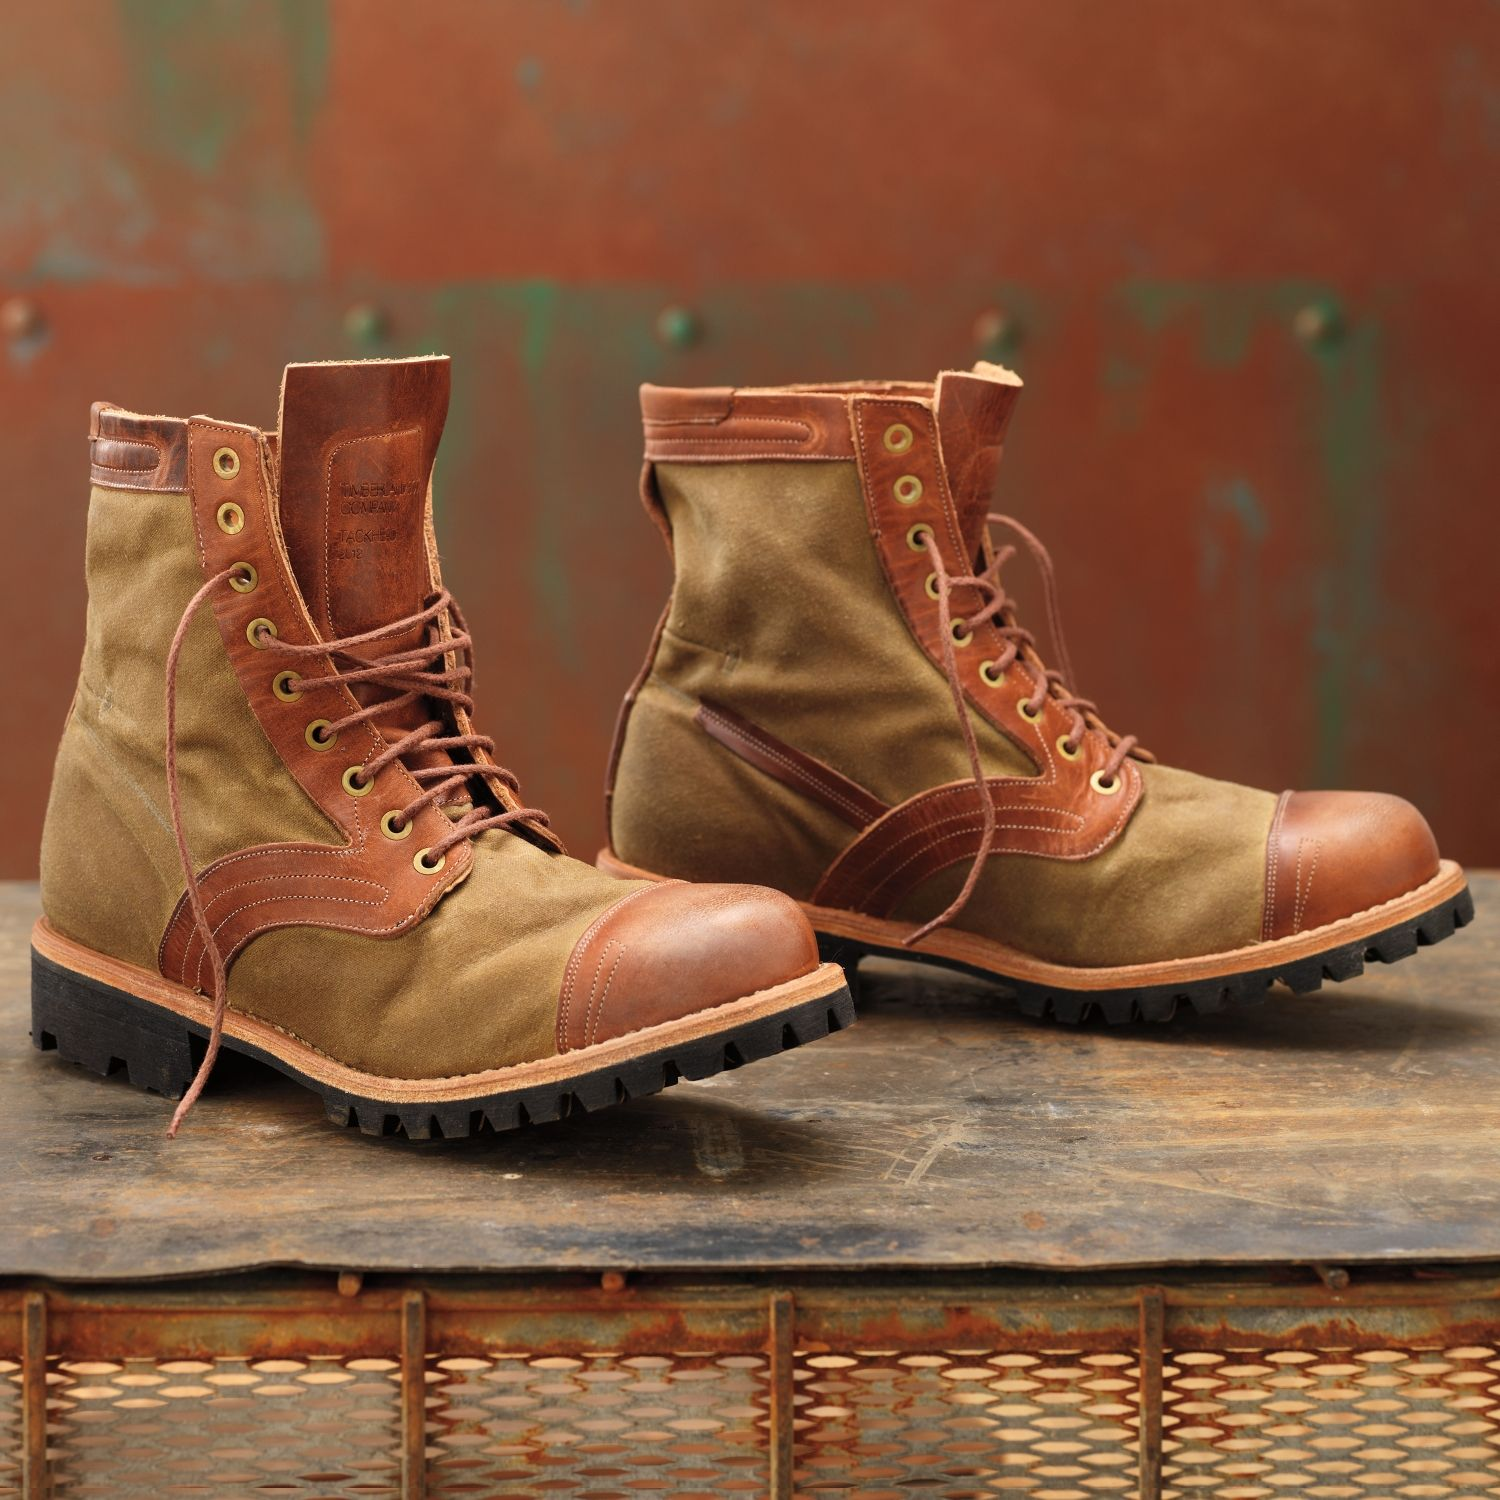 Vintage American style work boots. in 2019 | Timberland boot